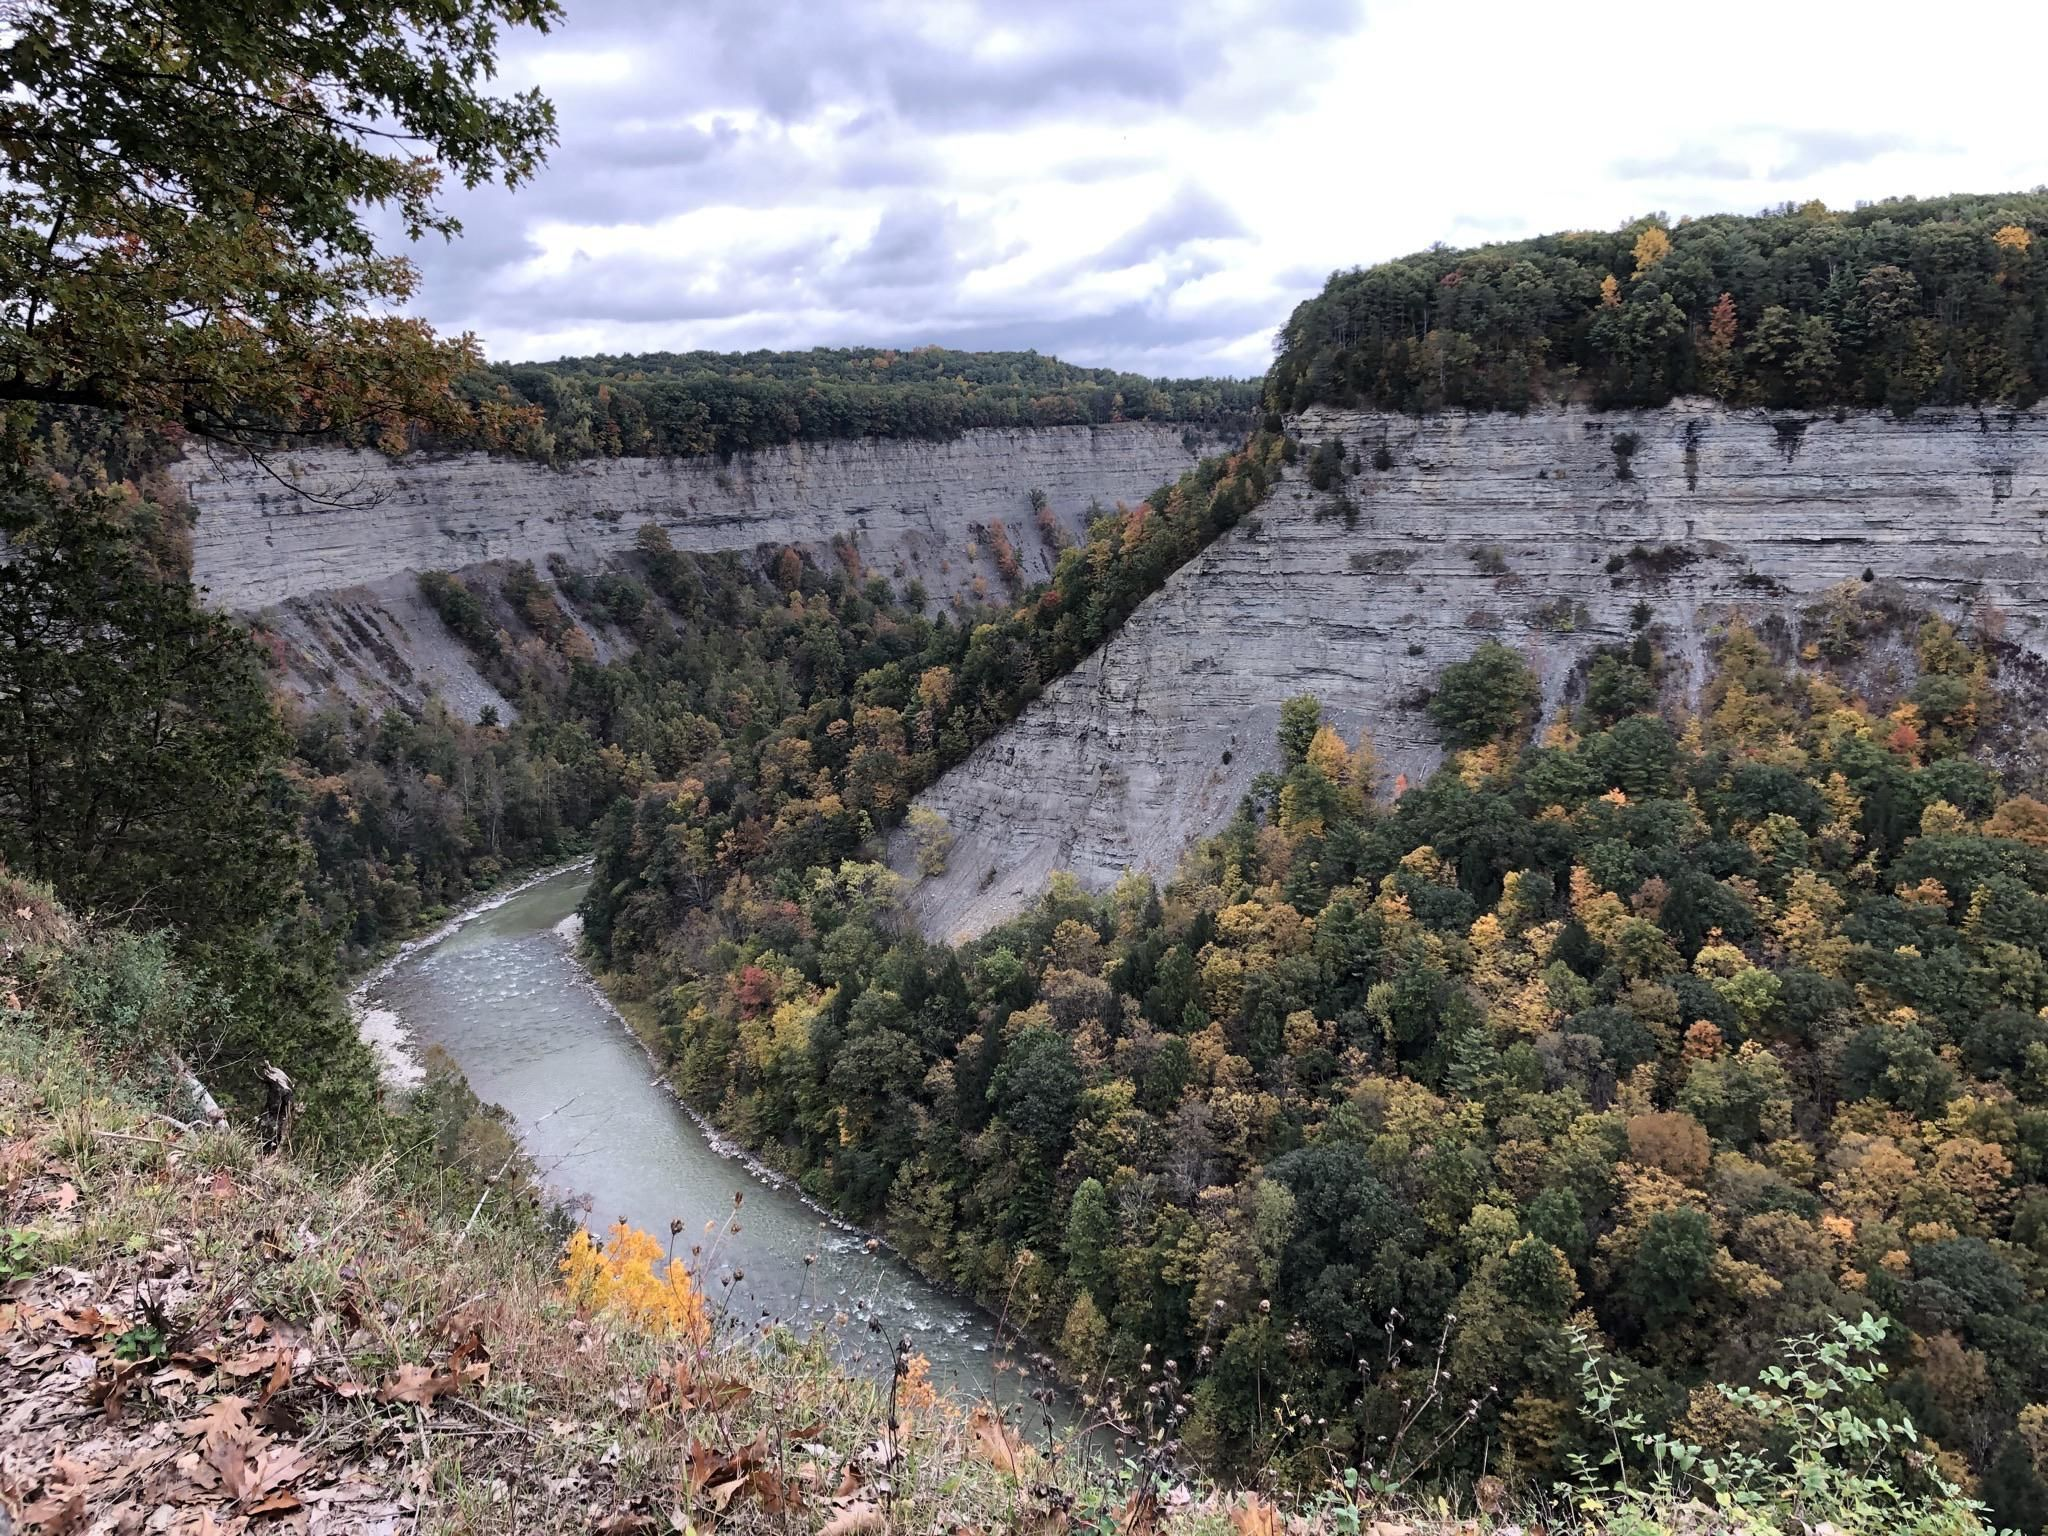 Letchworth State Park NY [OC] [4032x3024] #Music #IndieArtist #Chicago #letchworthstatepark Letchworth State Park NY [OC] [4032x3024] #Music #IndieArtist #Chicago #letchworthstatepark Letchworth State Park NY [OC] [4032x3024] #Music #IndieArtist #Chicago #letchworthstatepark Letchworth State Park NY [OC] [4032x3024] #Music #IndieArtist #Chicago #letchworthstatepark Letchworth State Park NY [OC] [4032x3024] #Music #IndieArtist #Chicago #letchworthstatepark Letchworth State Park NY [OC] [4032x3024 #letchworthstatepark